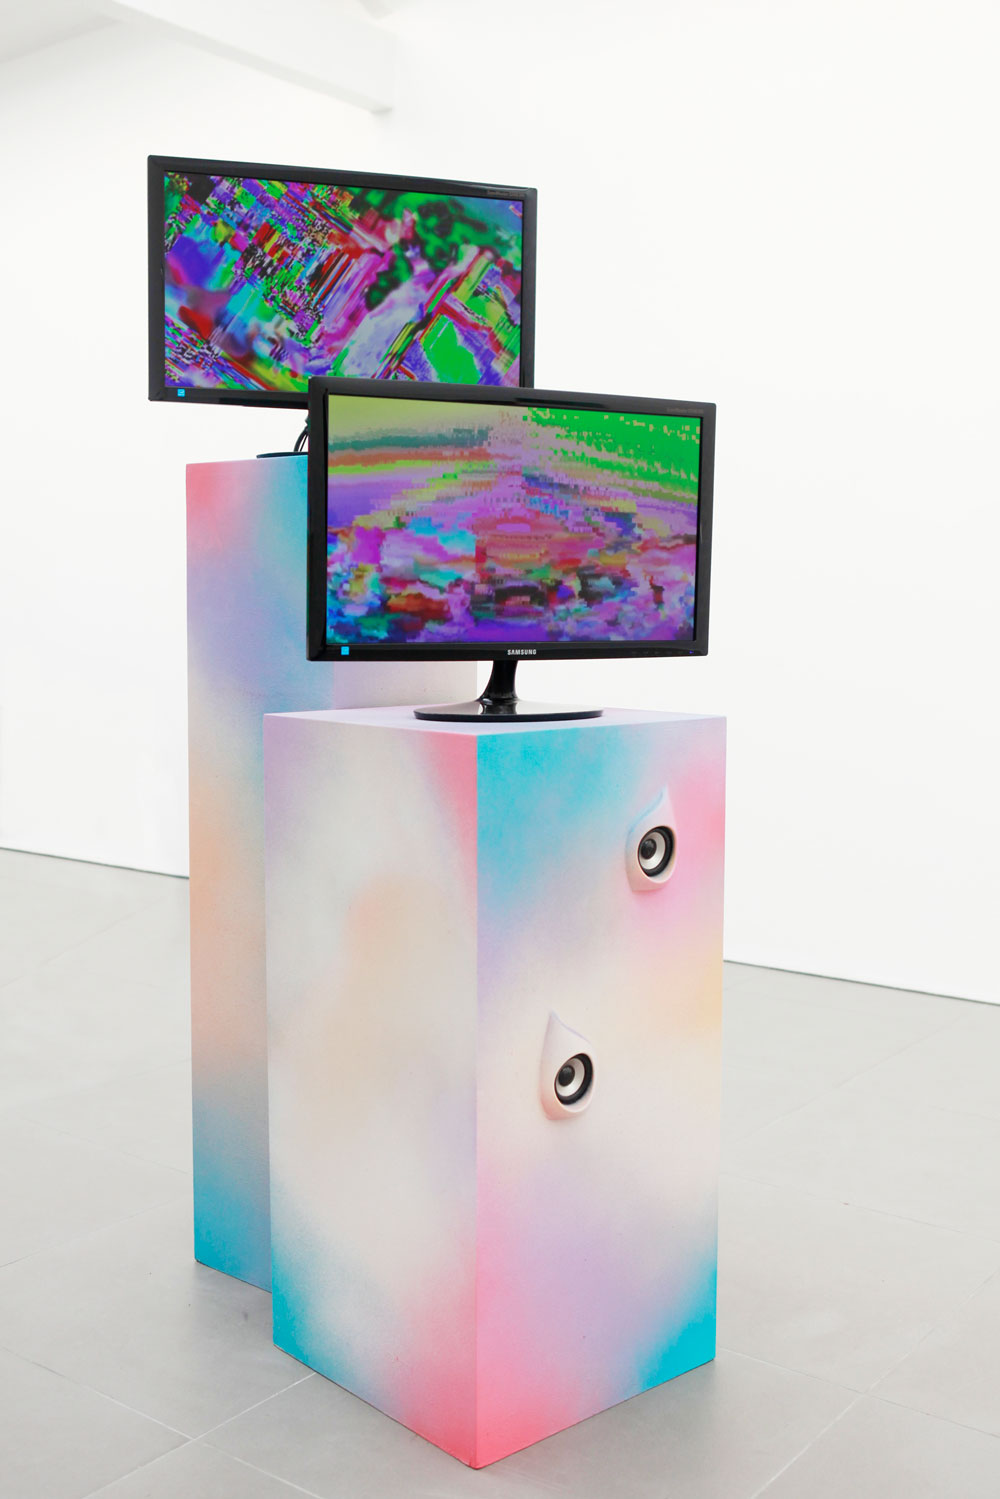 Adham Faramawy, Violet Likes Psychic Honey 2, 2012, Looped video + sculpture.